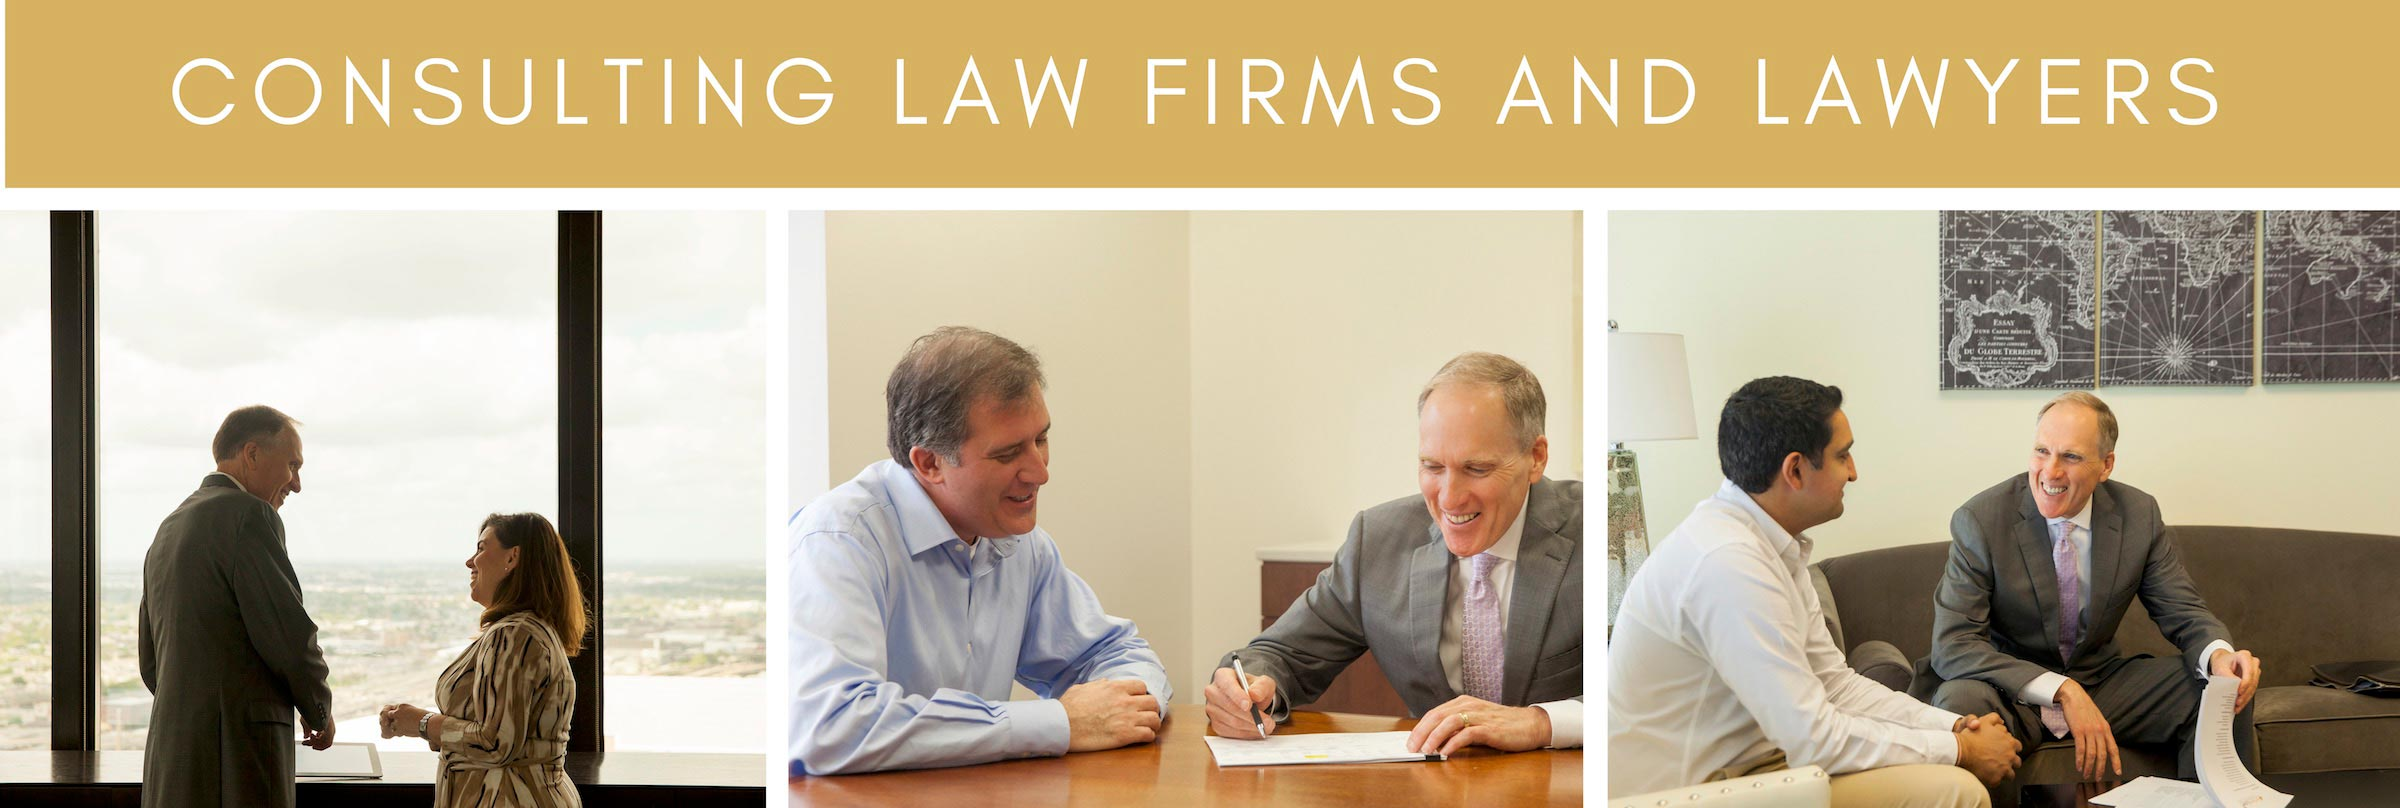 Law firm consultants